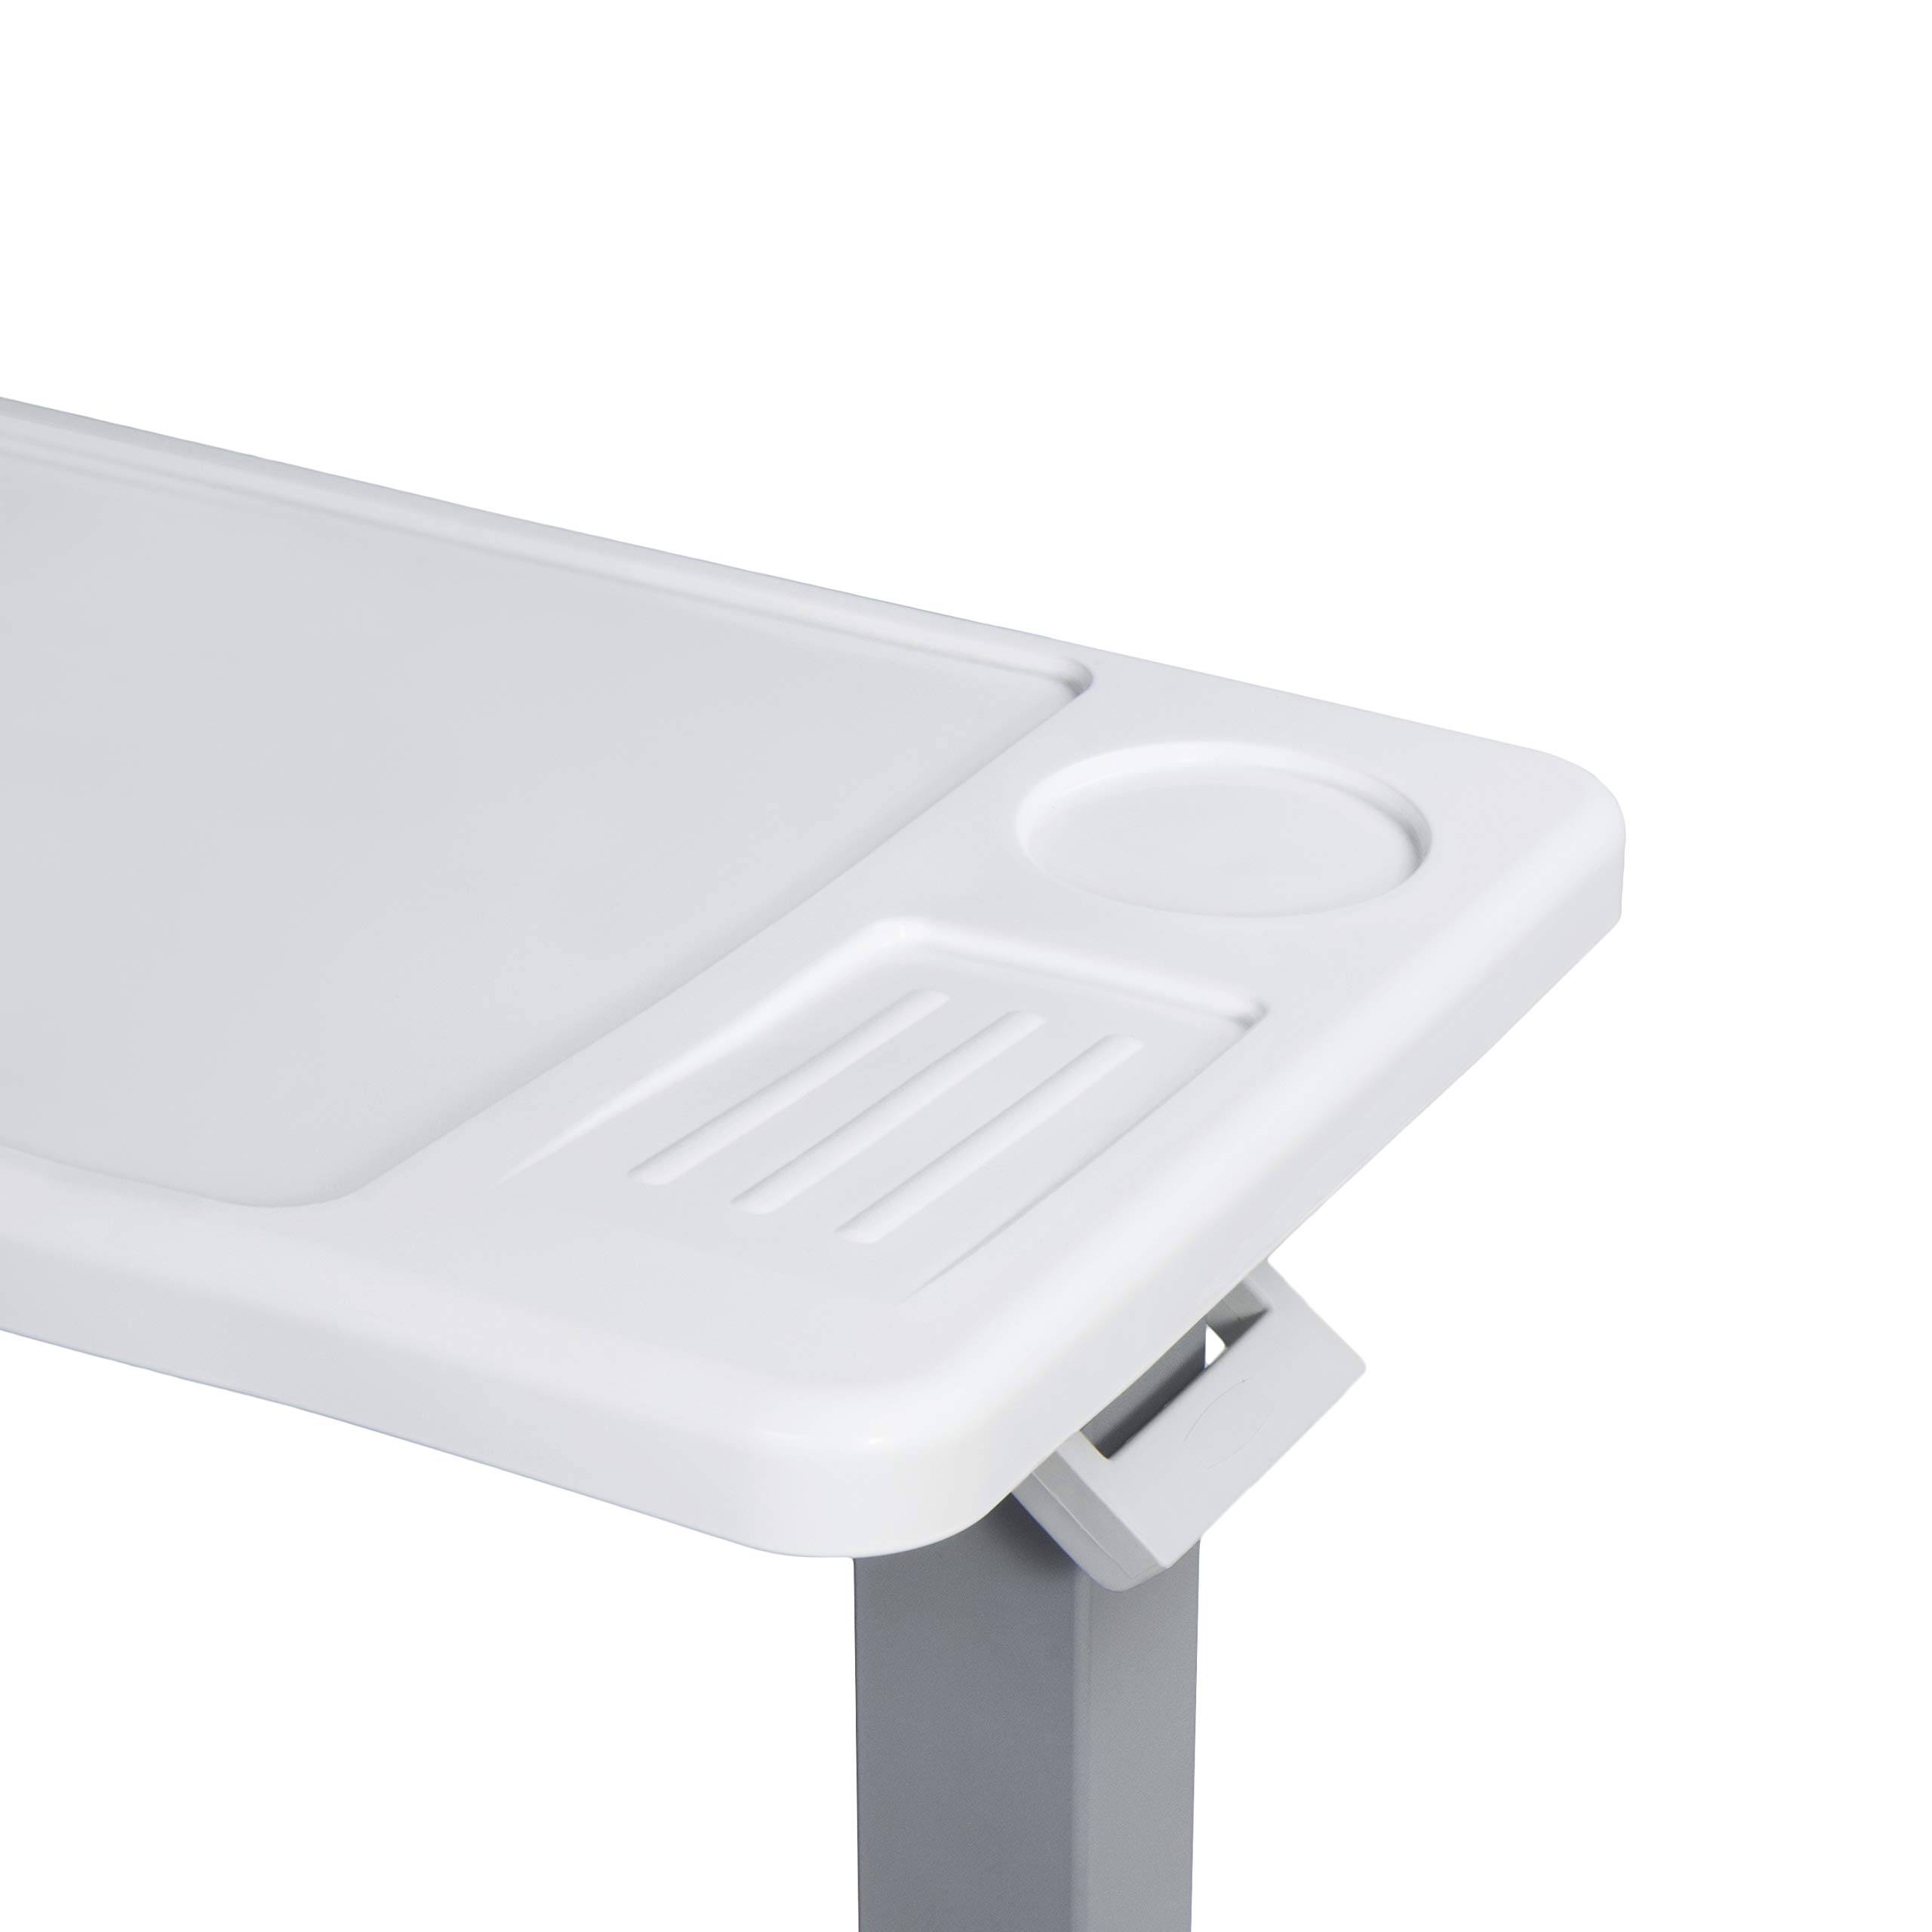 Vaunn Medical Deluxe Adjustable Overbed Bedside Table with Wheels (Hospital and Home Use) by Vaunn (Image #2)